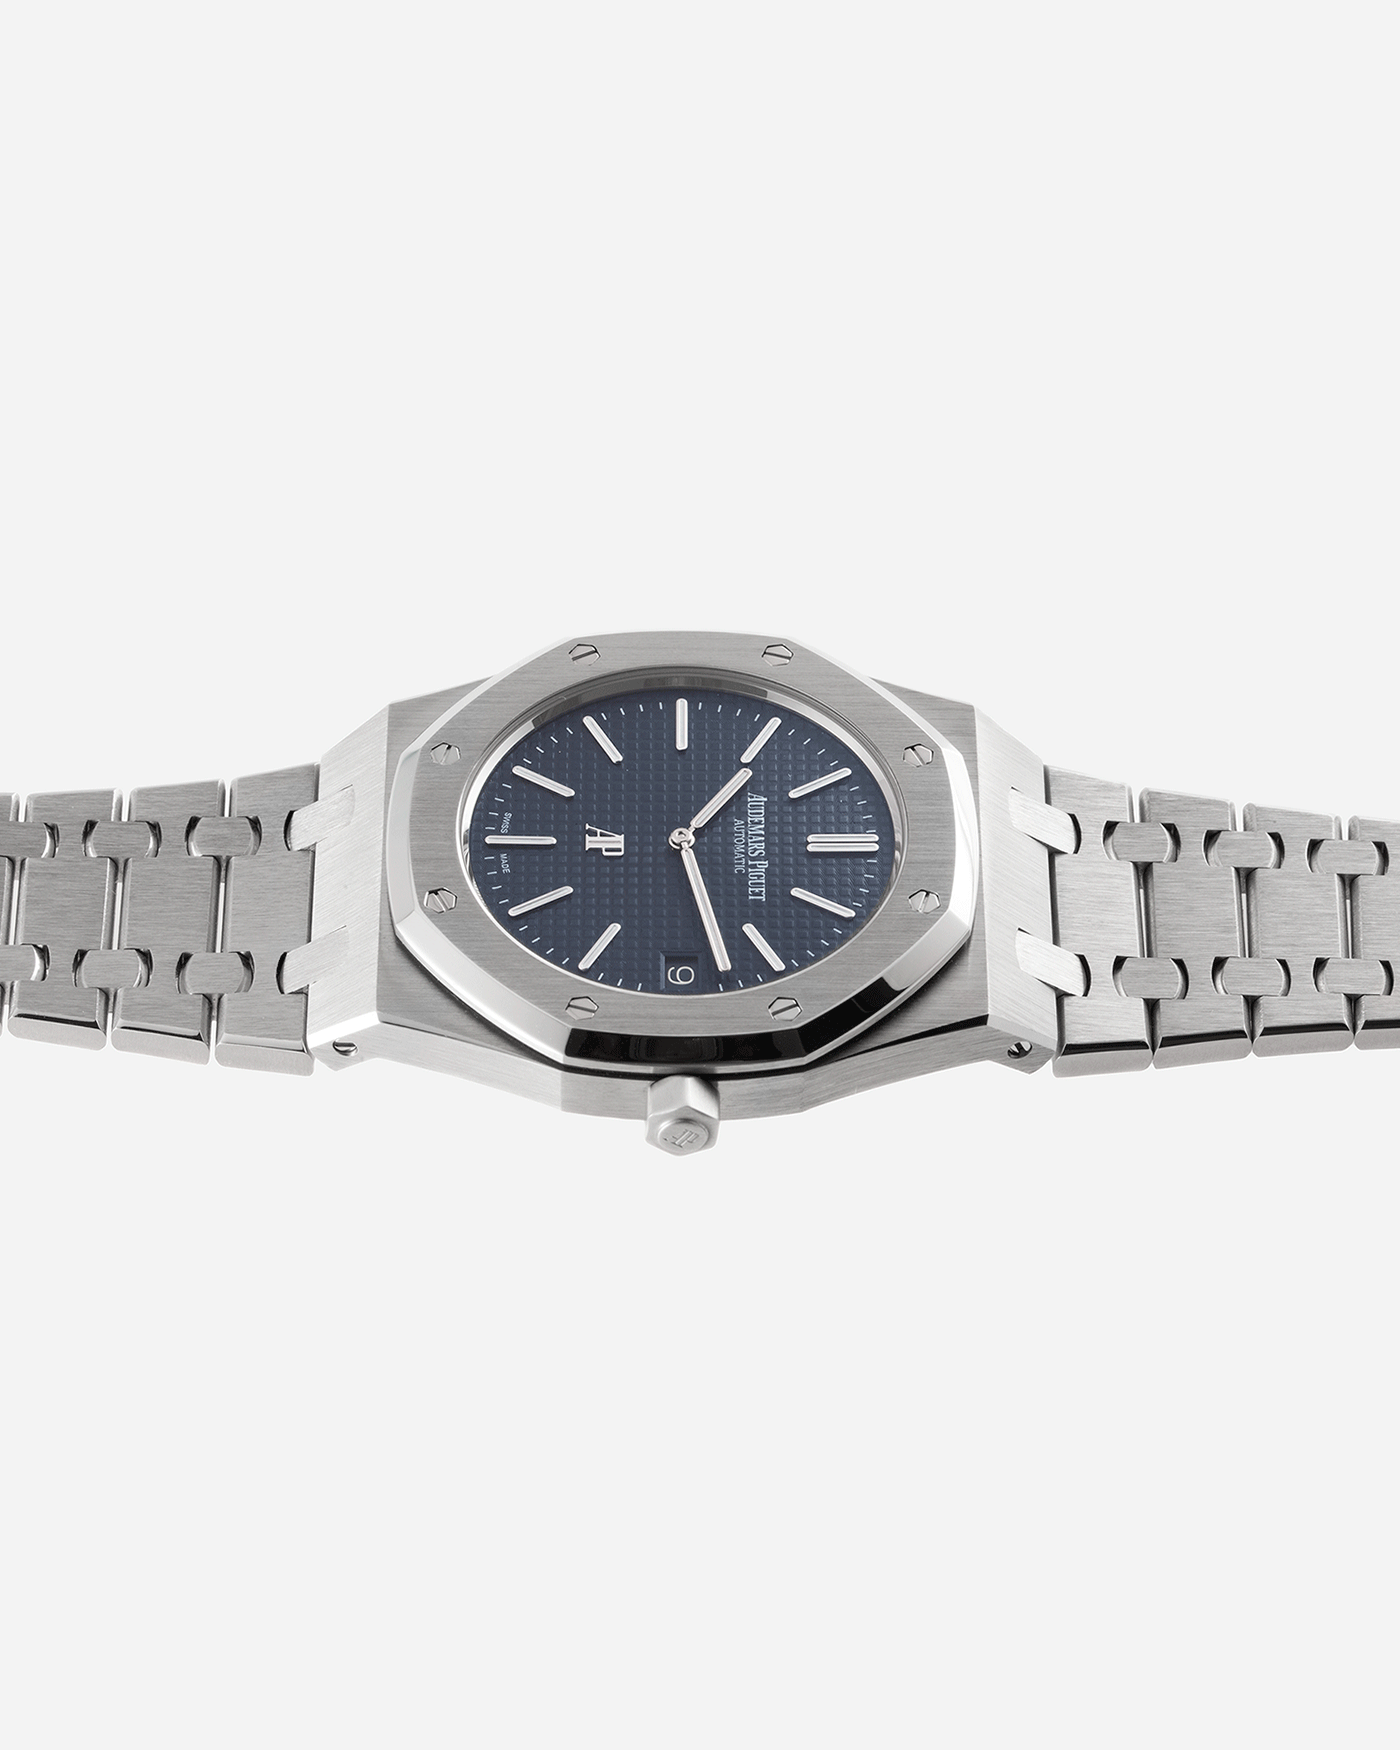 Audemars Piguet Royal Oak 15202 Jumbo Watch | S.Song Vintage Timepieces